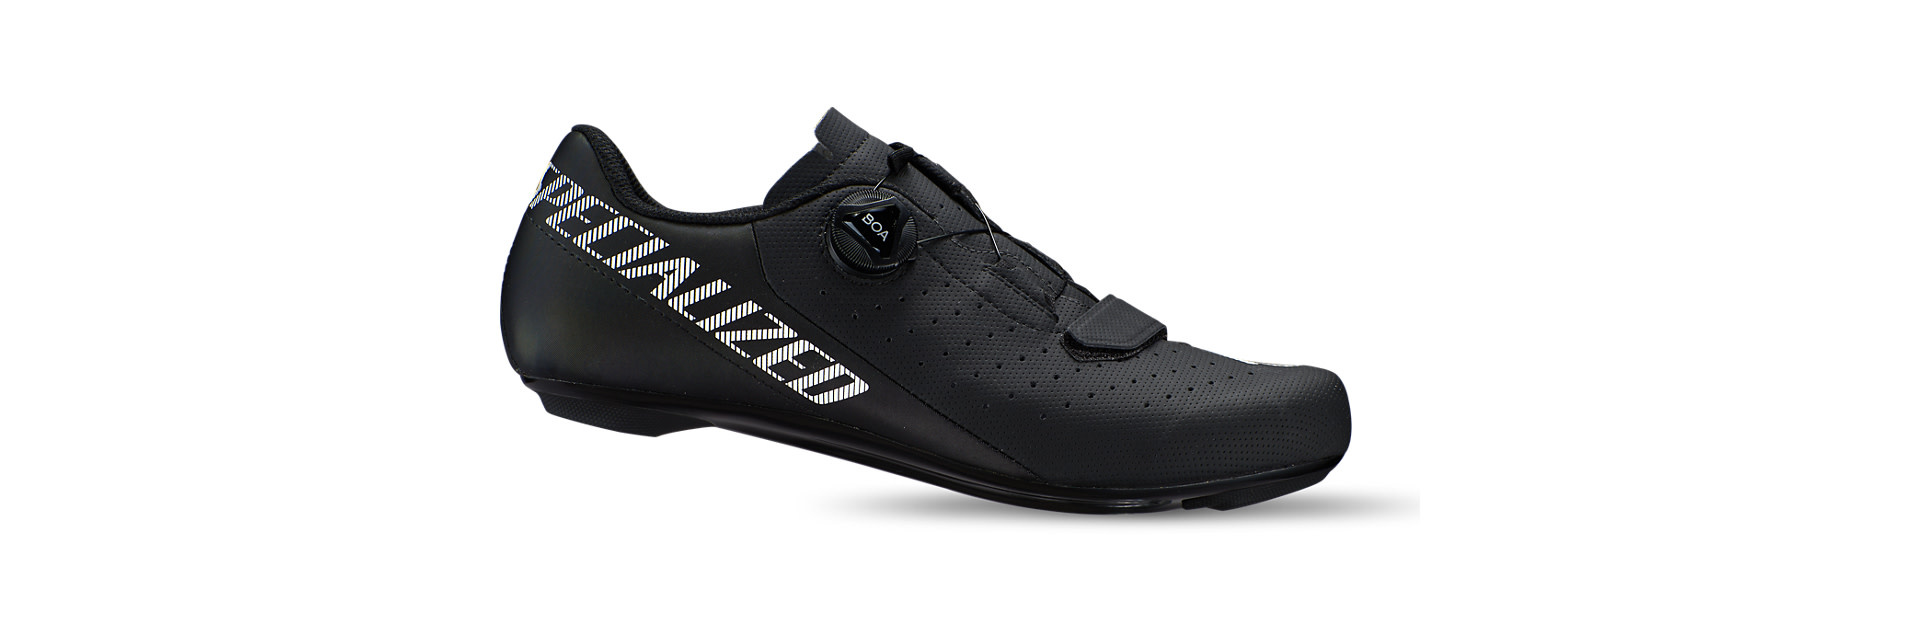 Specialized Torch 1.0 - Unisex